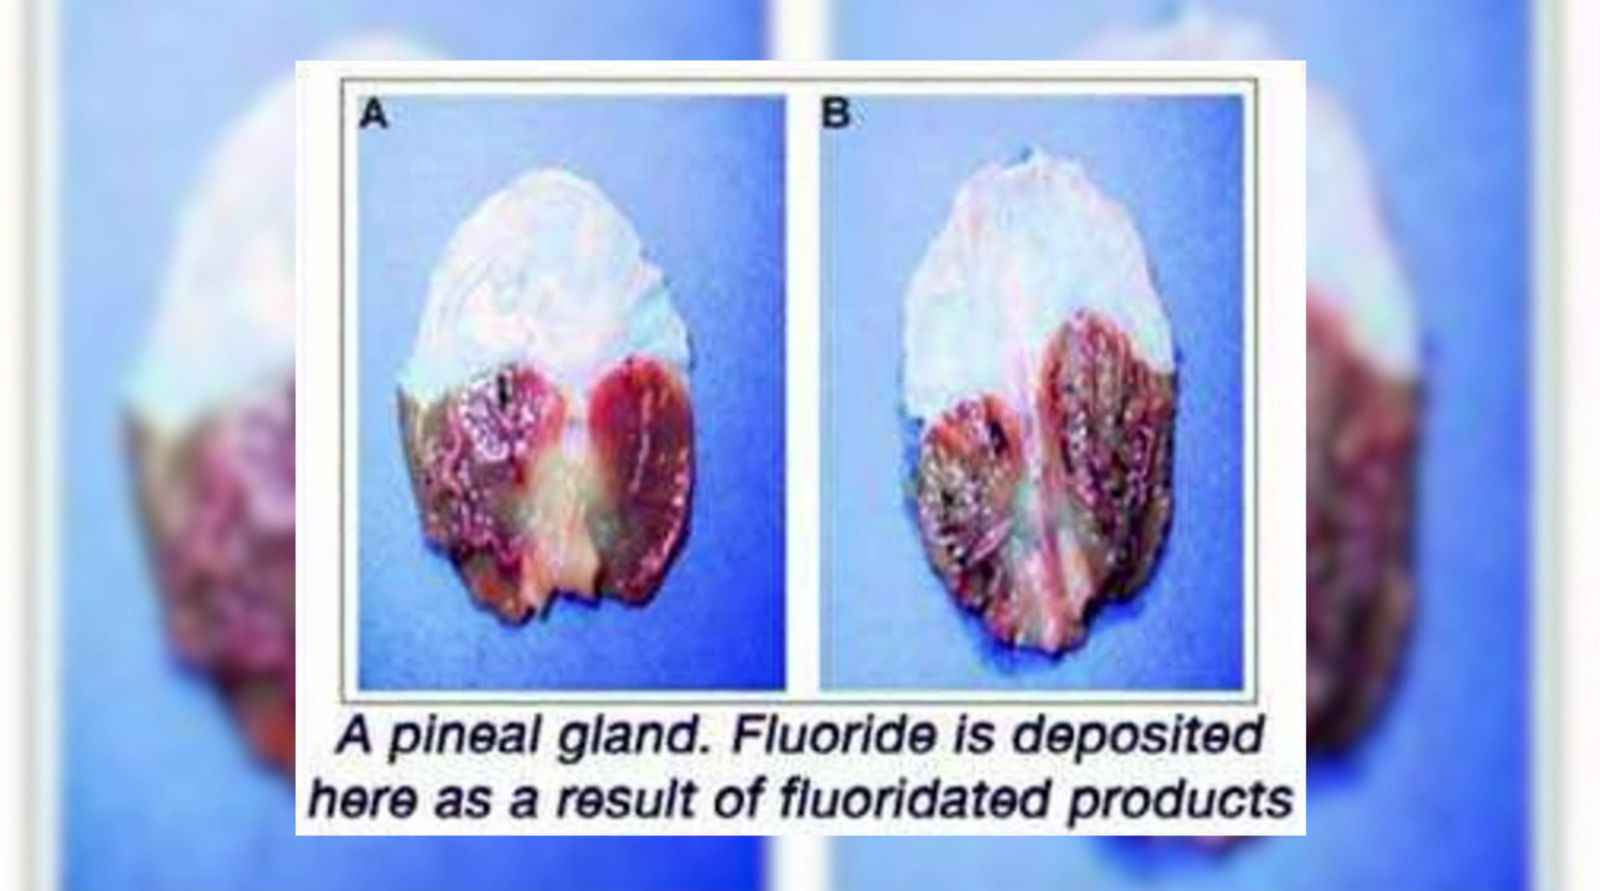 https://de.spherebeingalliance.com/media/img/1600x0/2017-01/5_calcified_pineal_gland.jpg